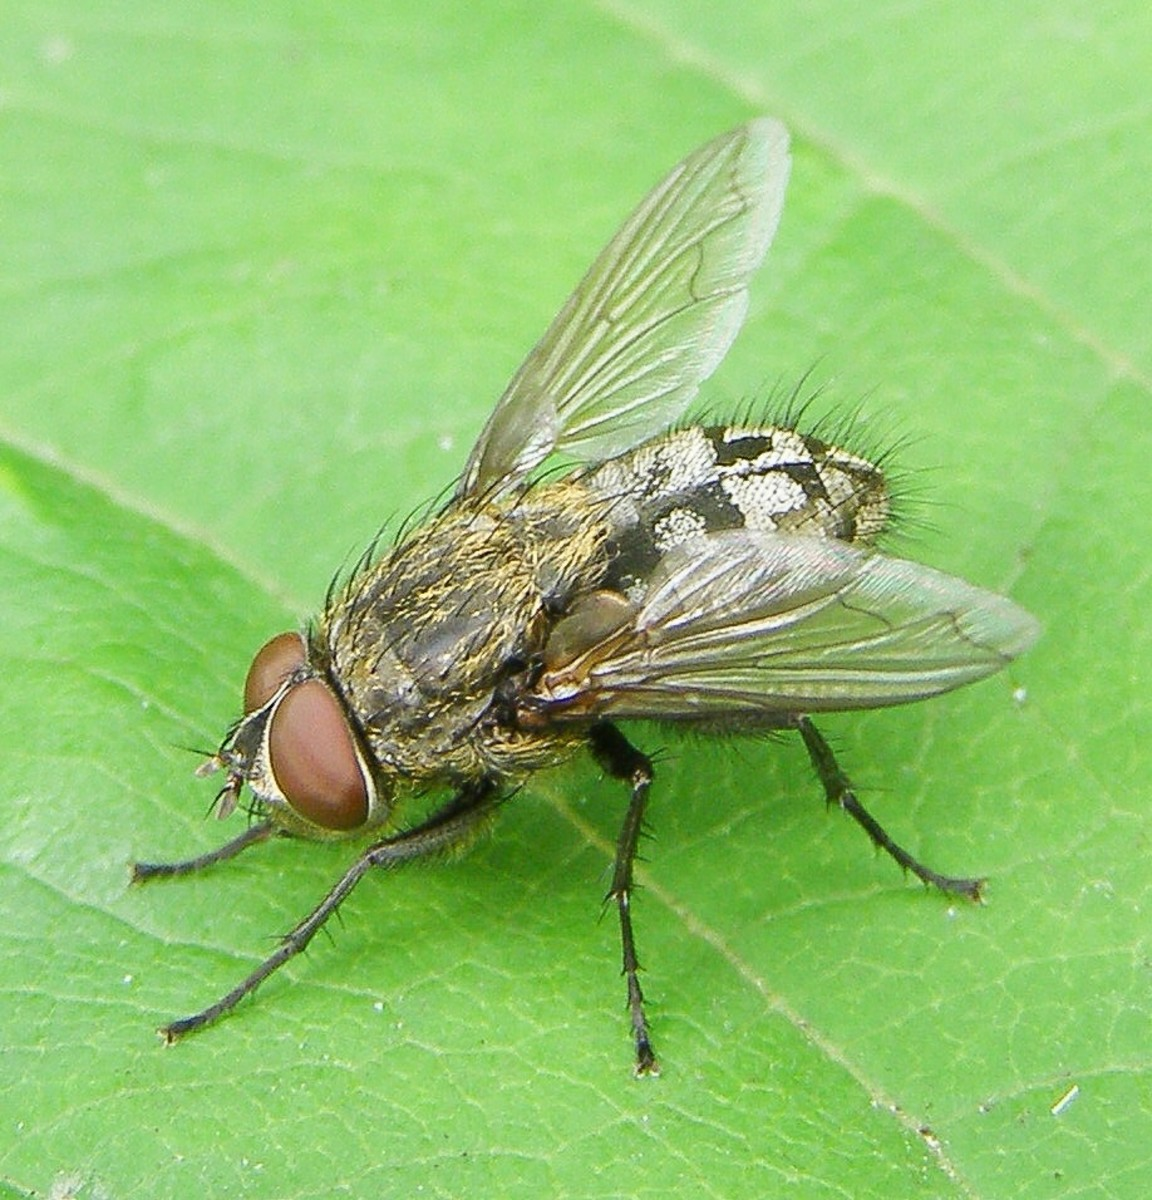 This is a male cluster fly (genus Pollenia). Cluster flies have different behaviour from other blow flies. Adults feed on nectar and spend the winter in buildings. The larvae are parasites of earthworms.